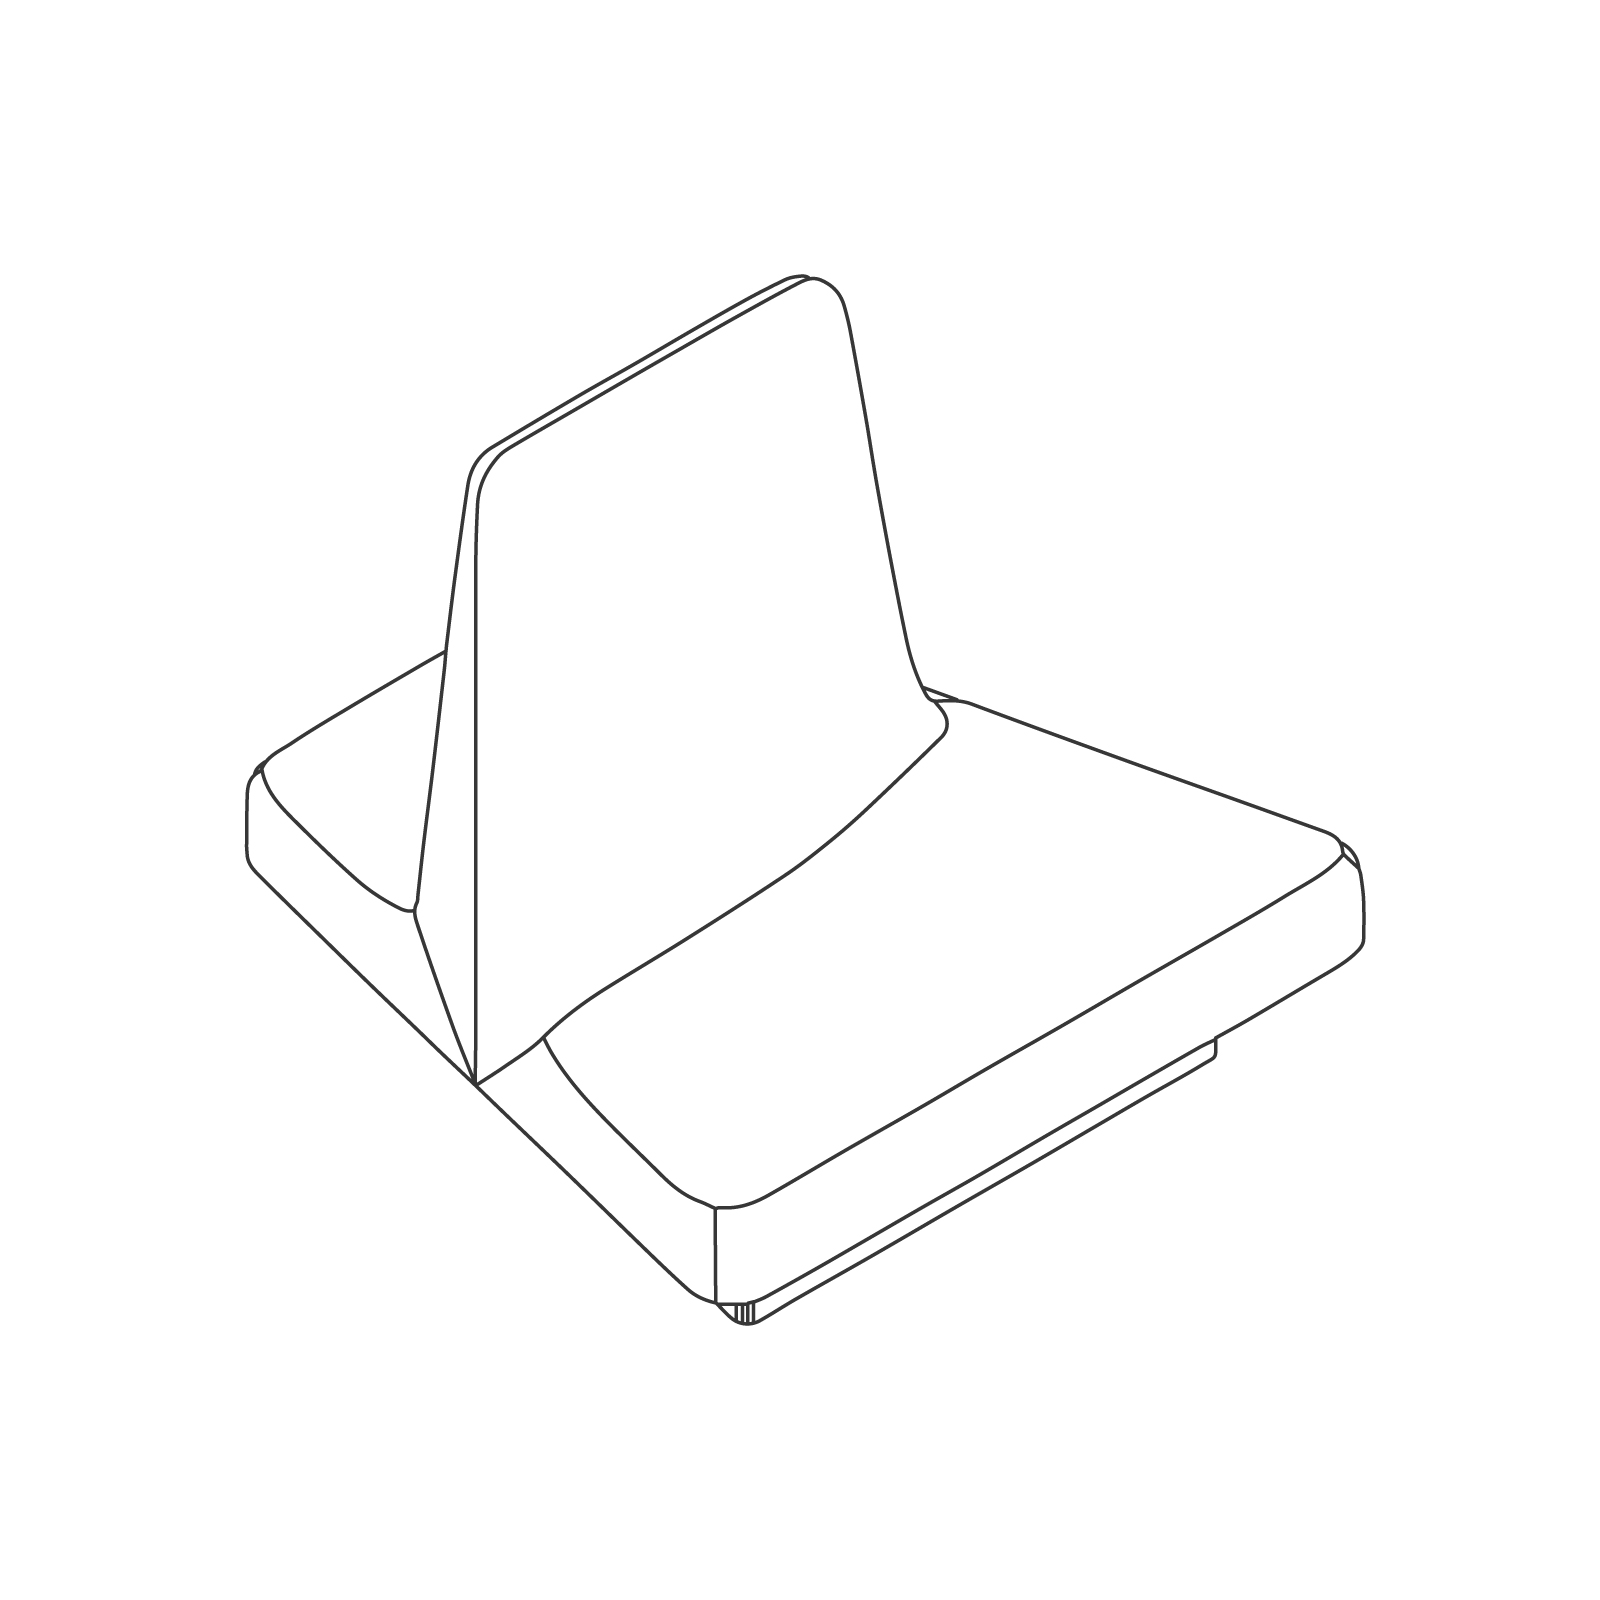 A line drawing of Rhyme Modular Seating–End A.